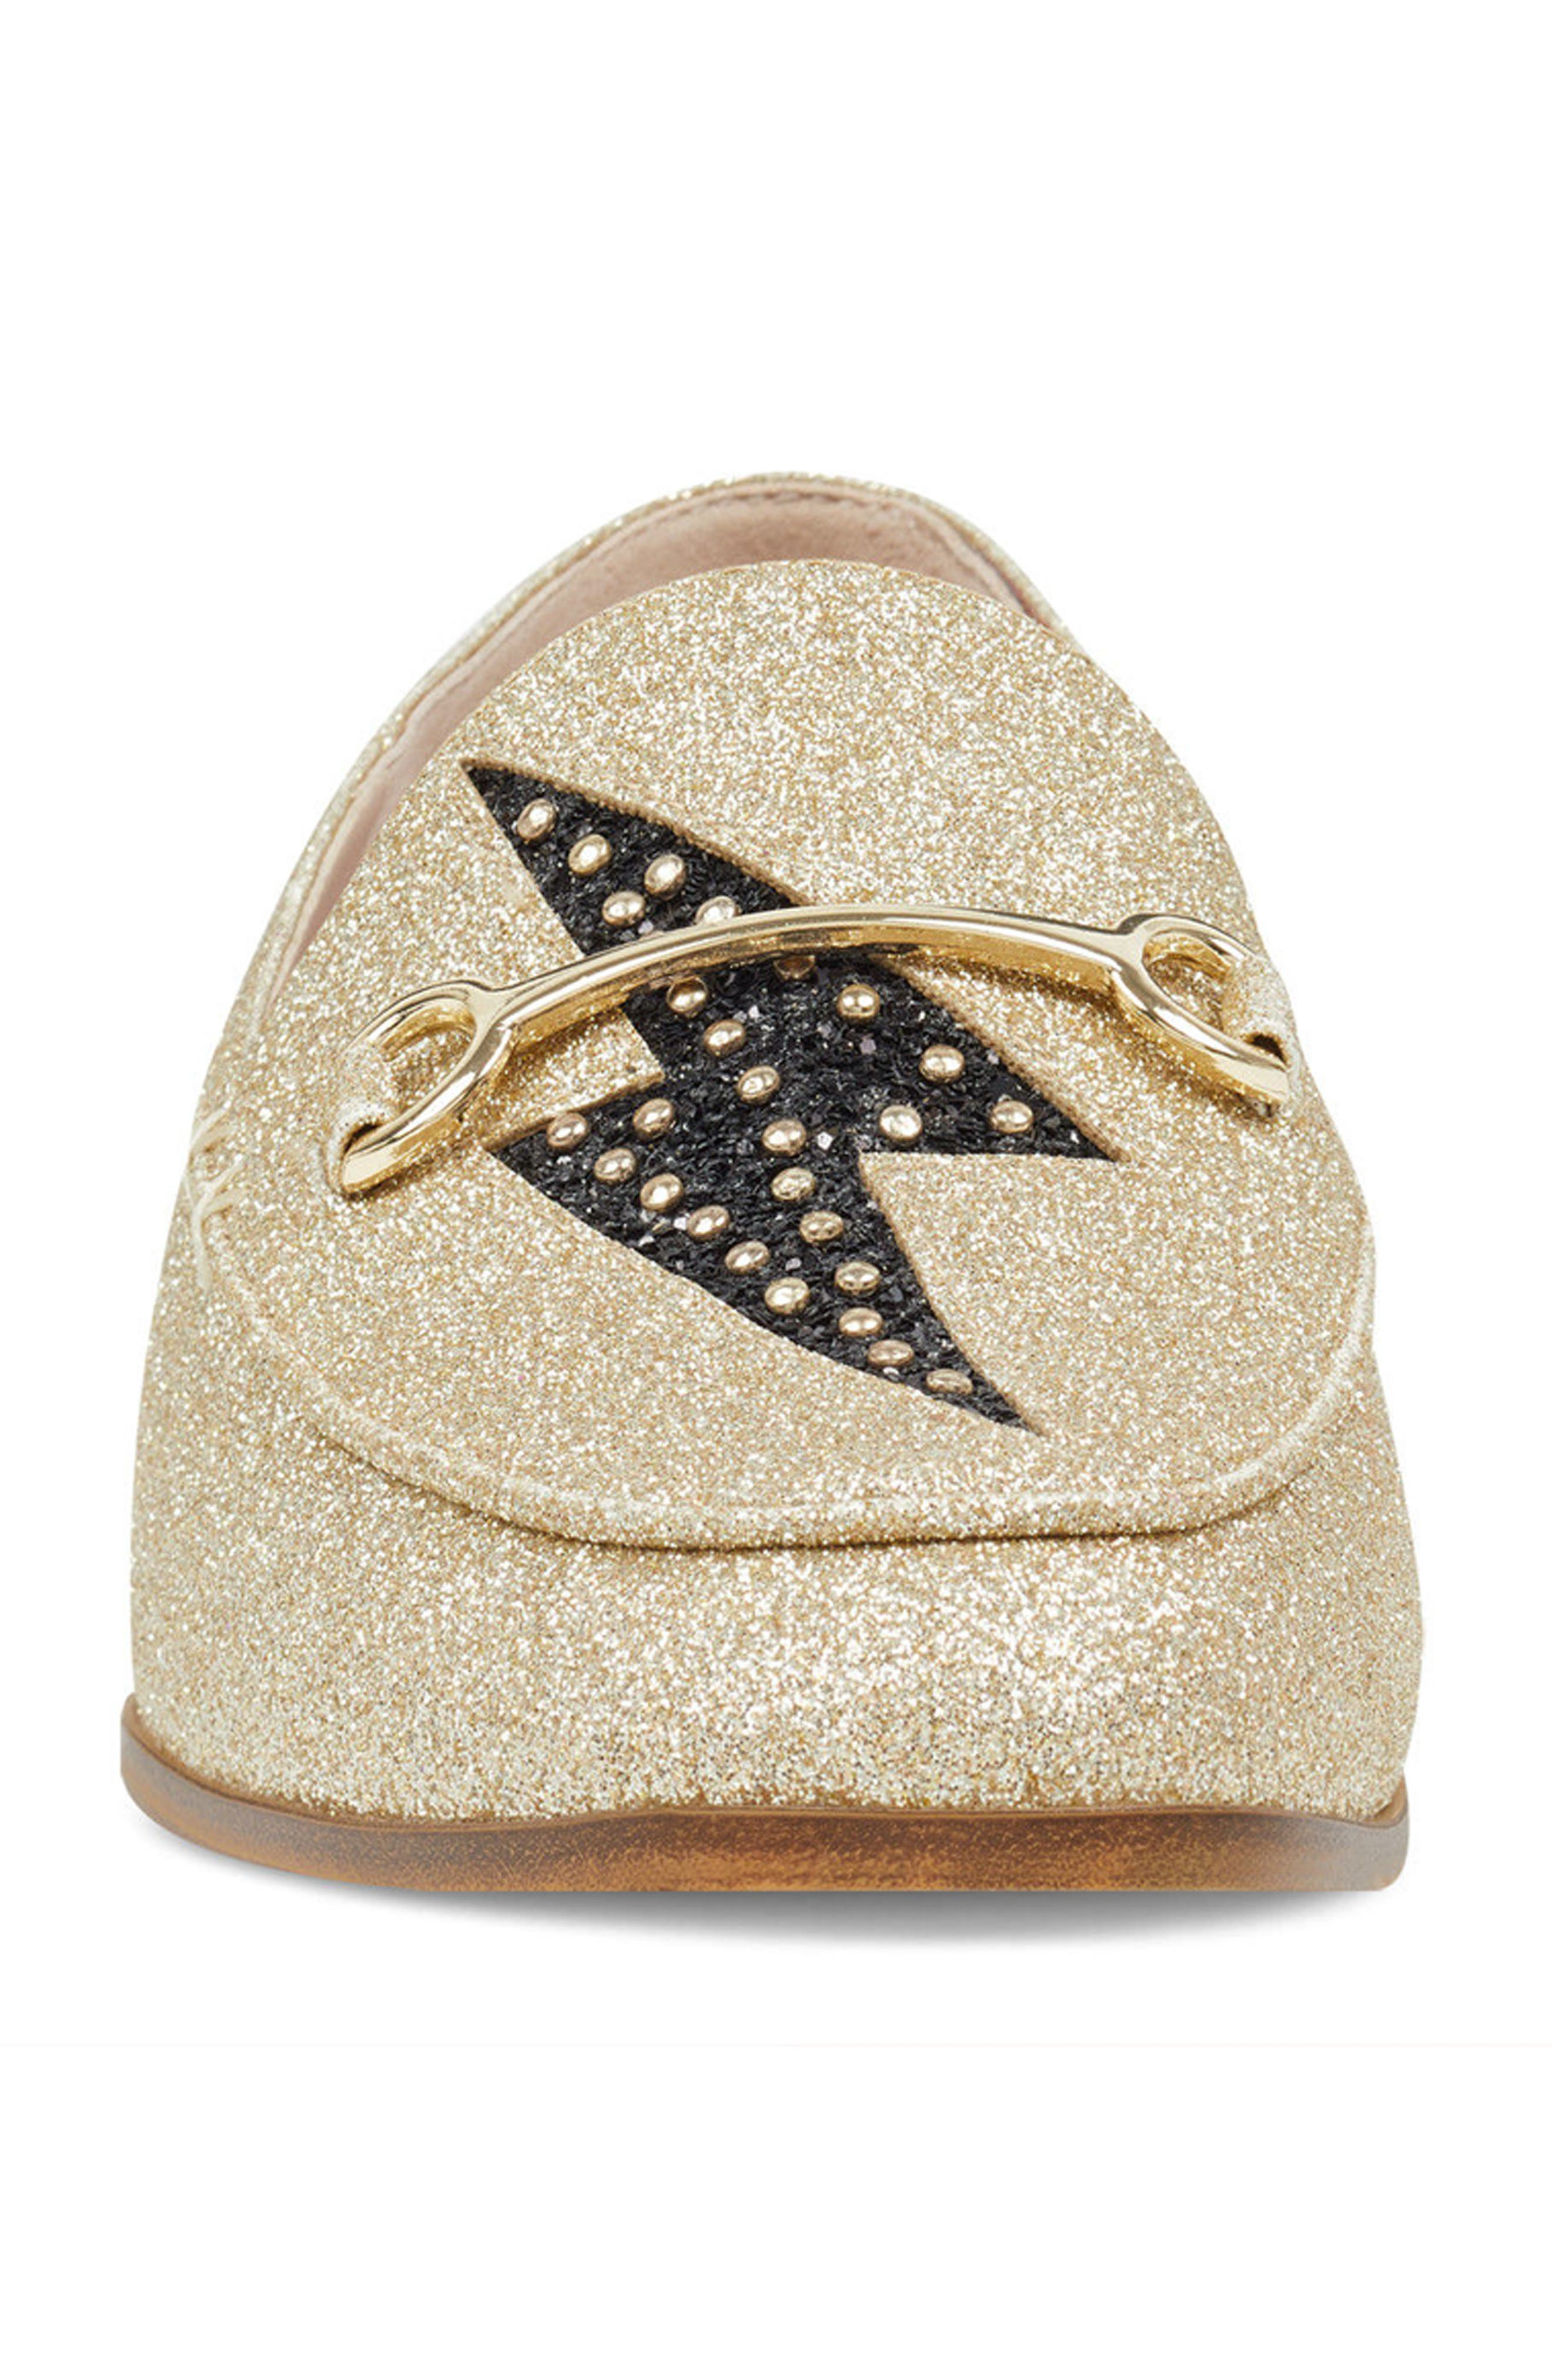 Wildgirls Embellished Loafer,                             Alternate thumbnail 4, color,                             Light Gold/ Black Fabric